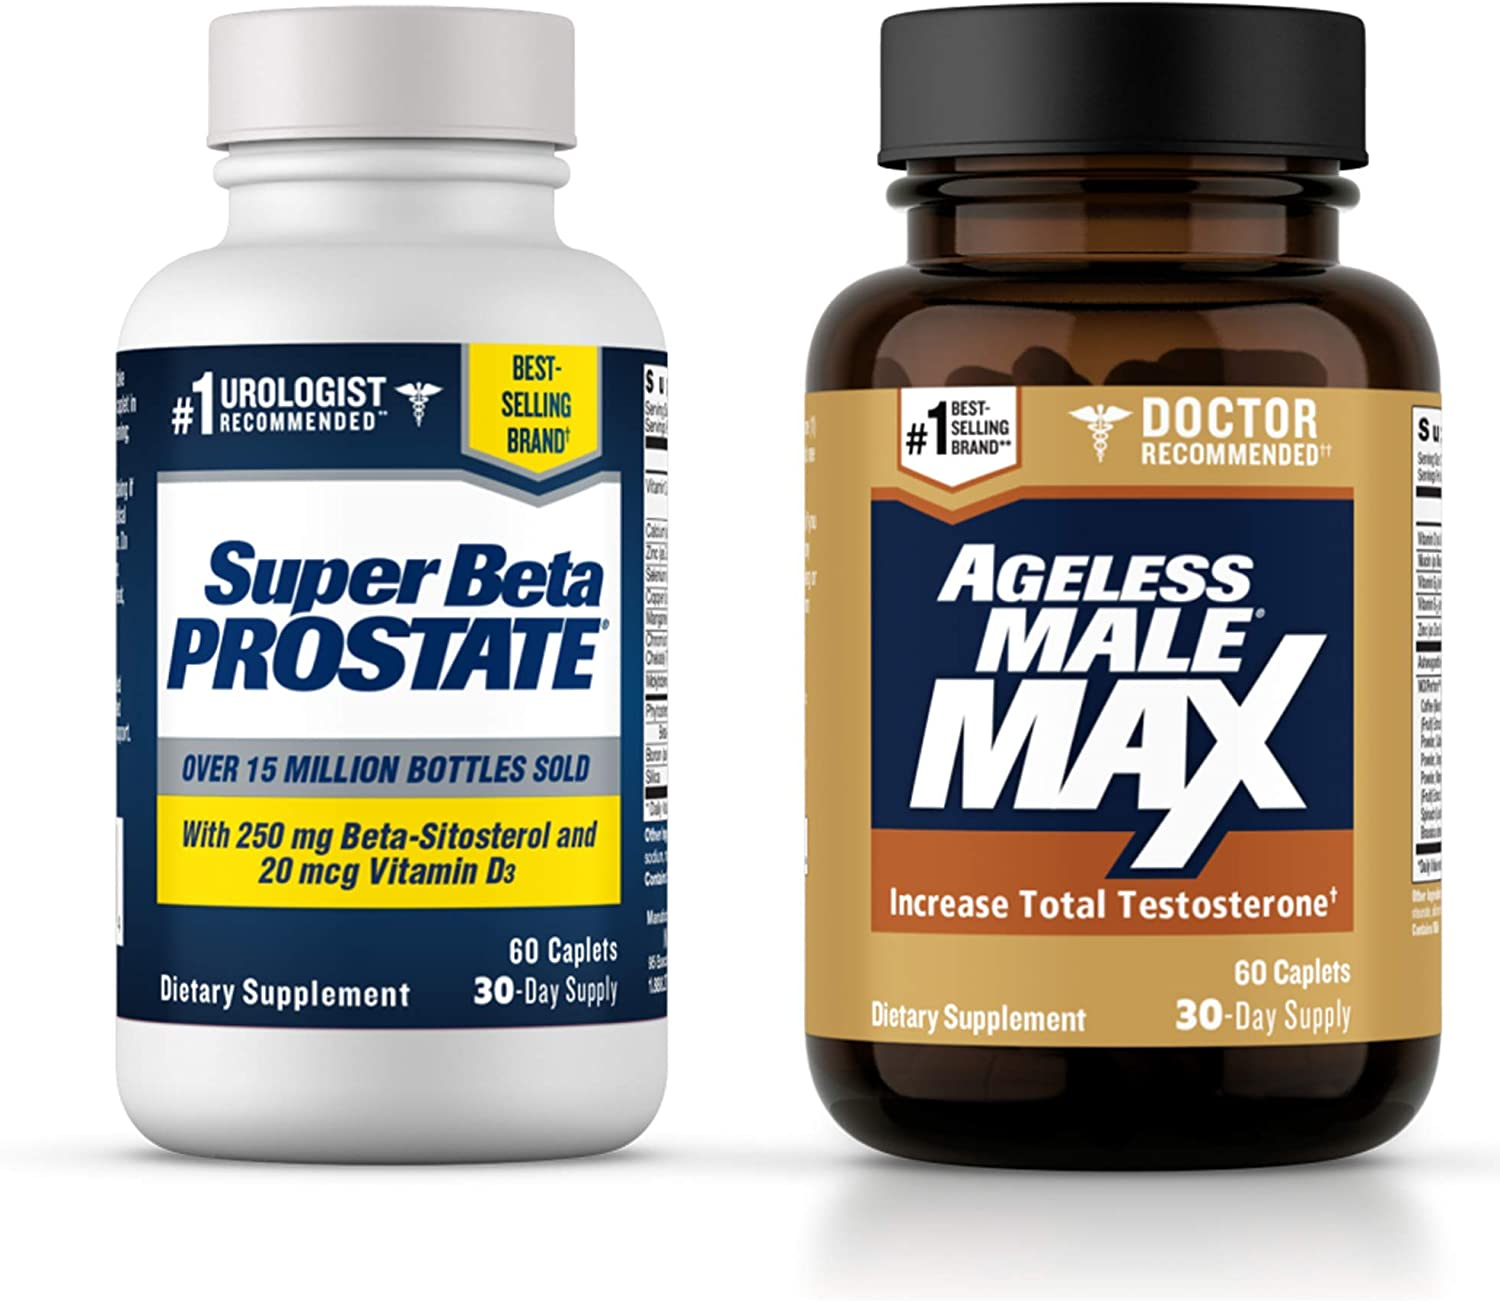 Ageless Male Max Total Testosterone Booster & Super Beta Prostate Supplement for Men - Boost Testosterone & Reduce Frequent Nighttime Bathroom Trips with Science-Based Formulas